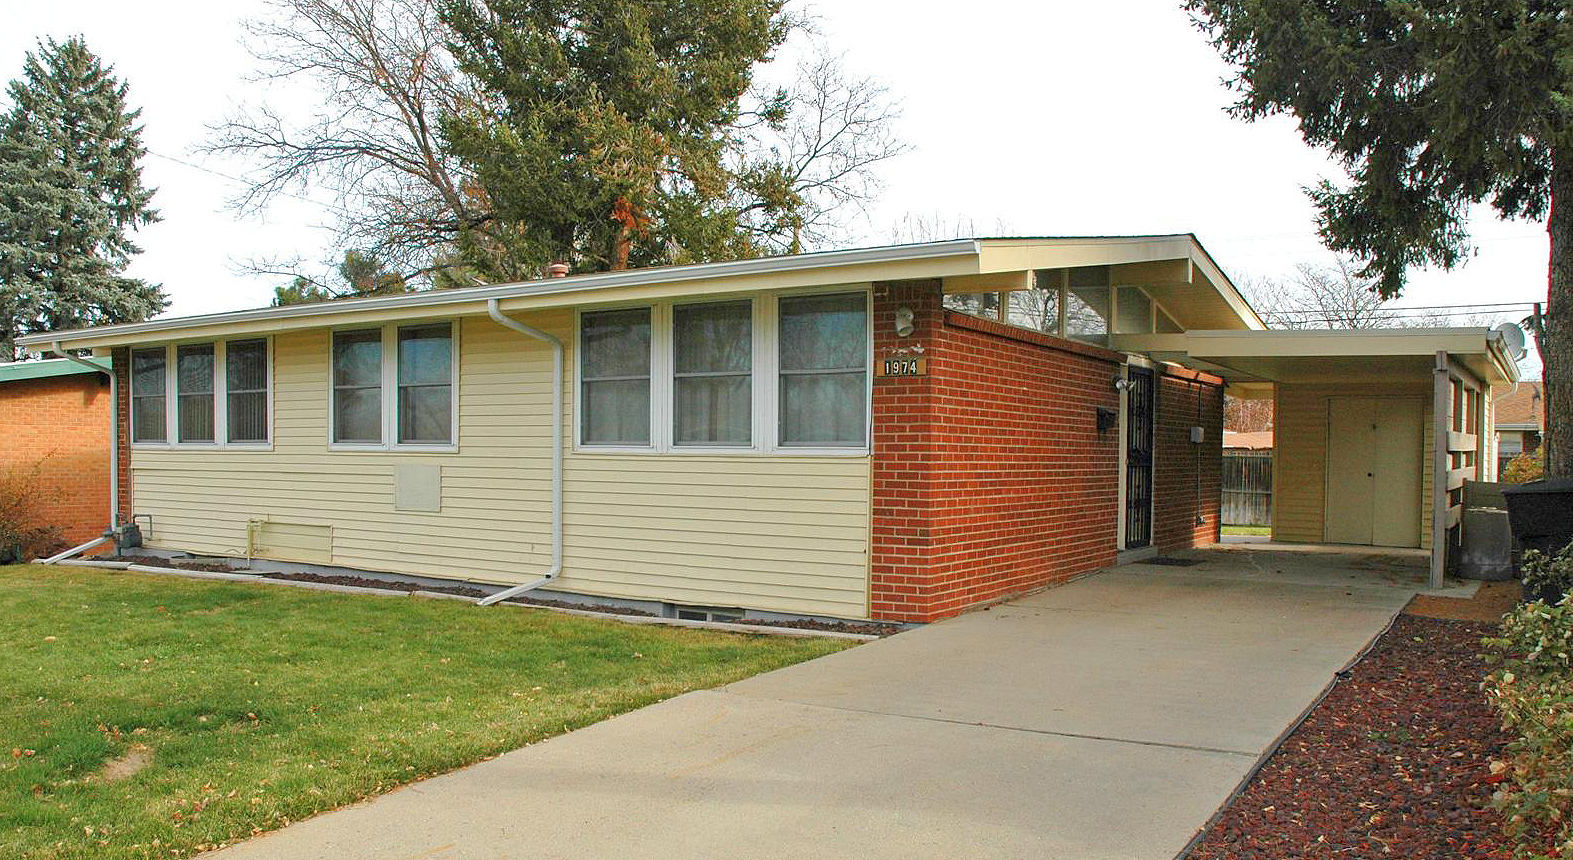 Affordable mid century modern under 225k for Mid century modern home builders